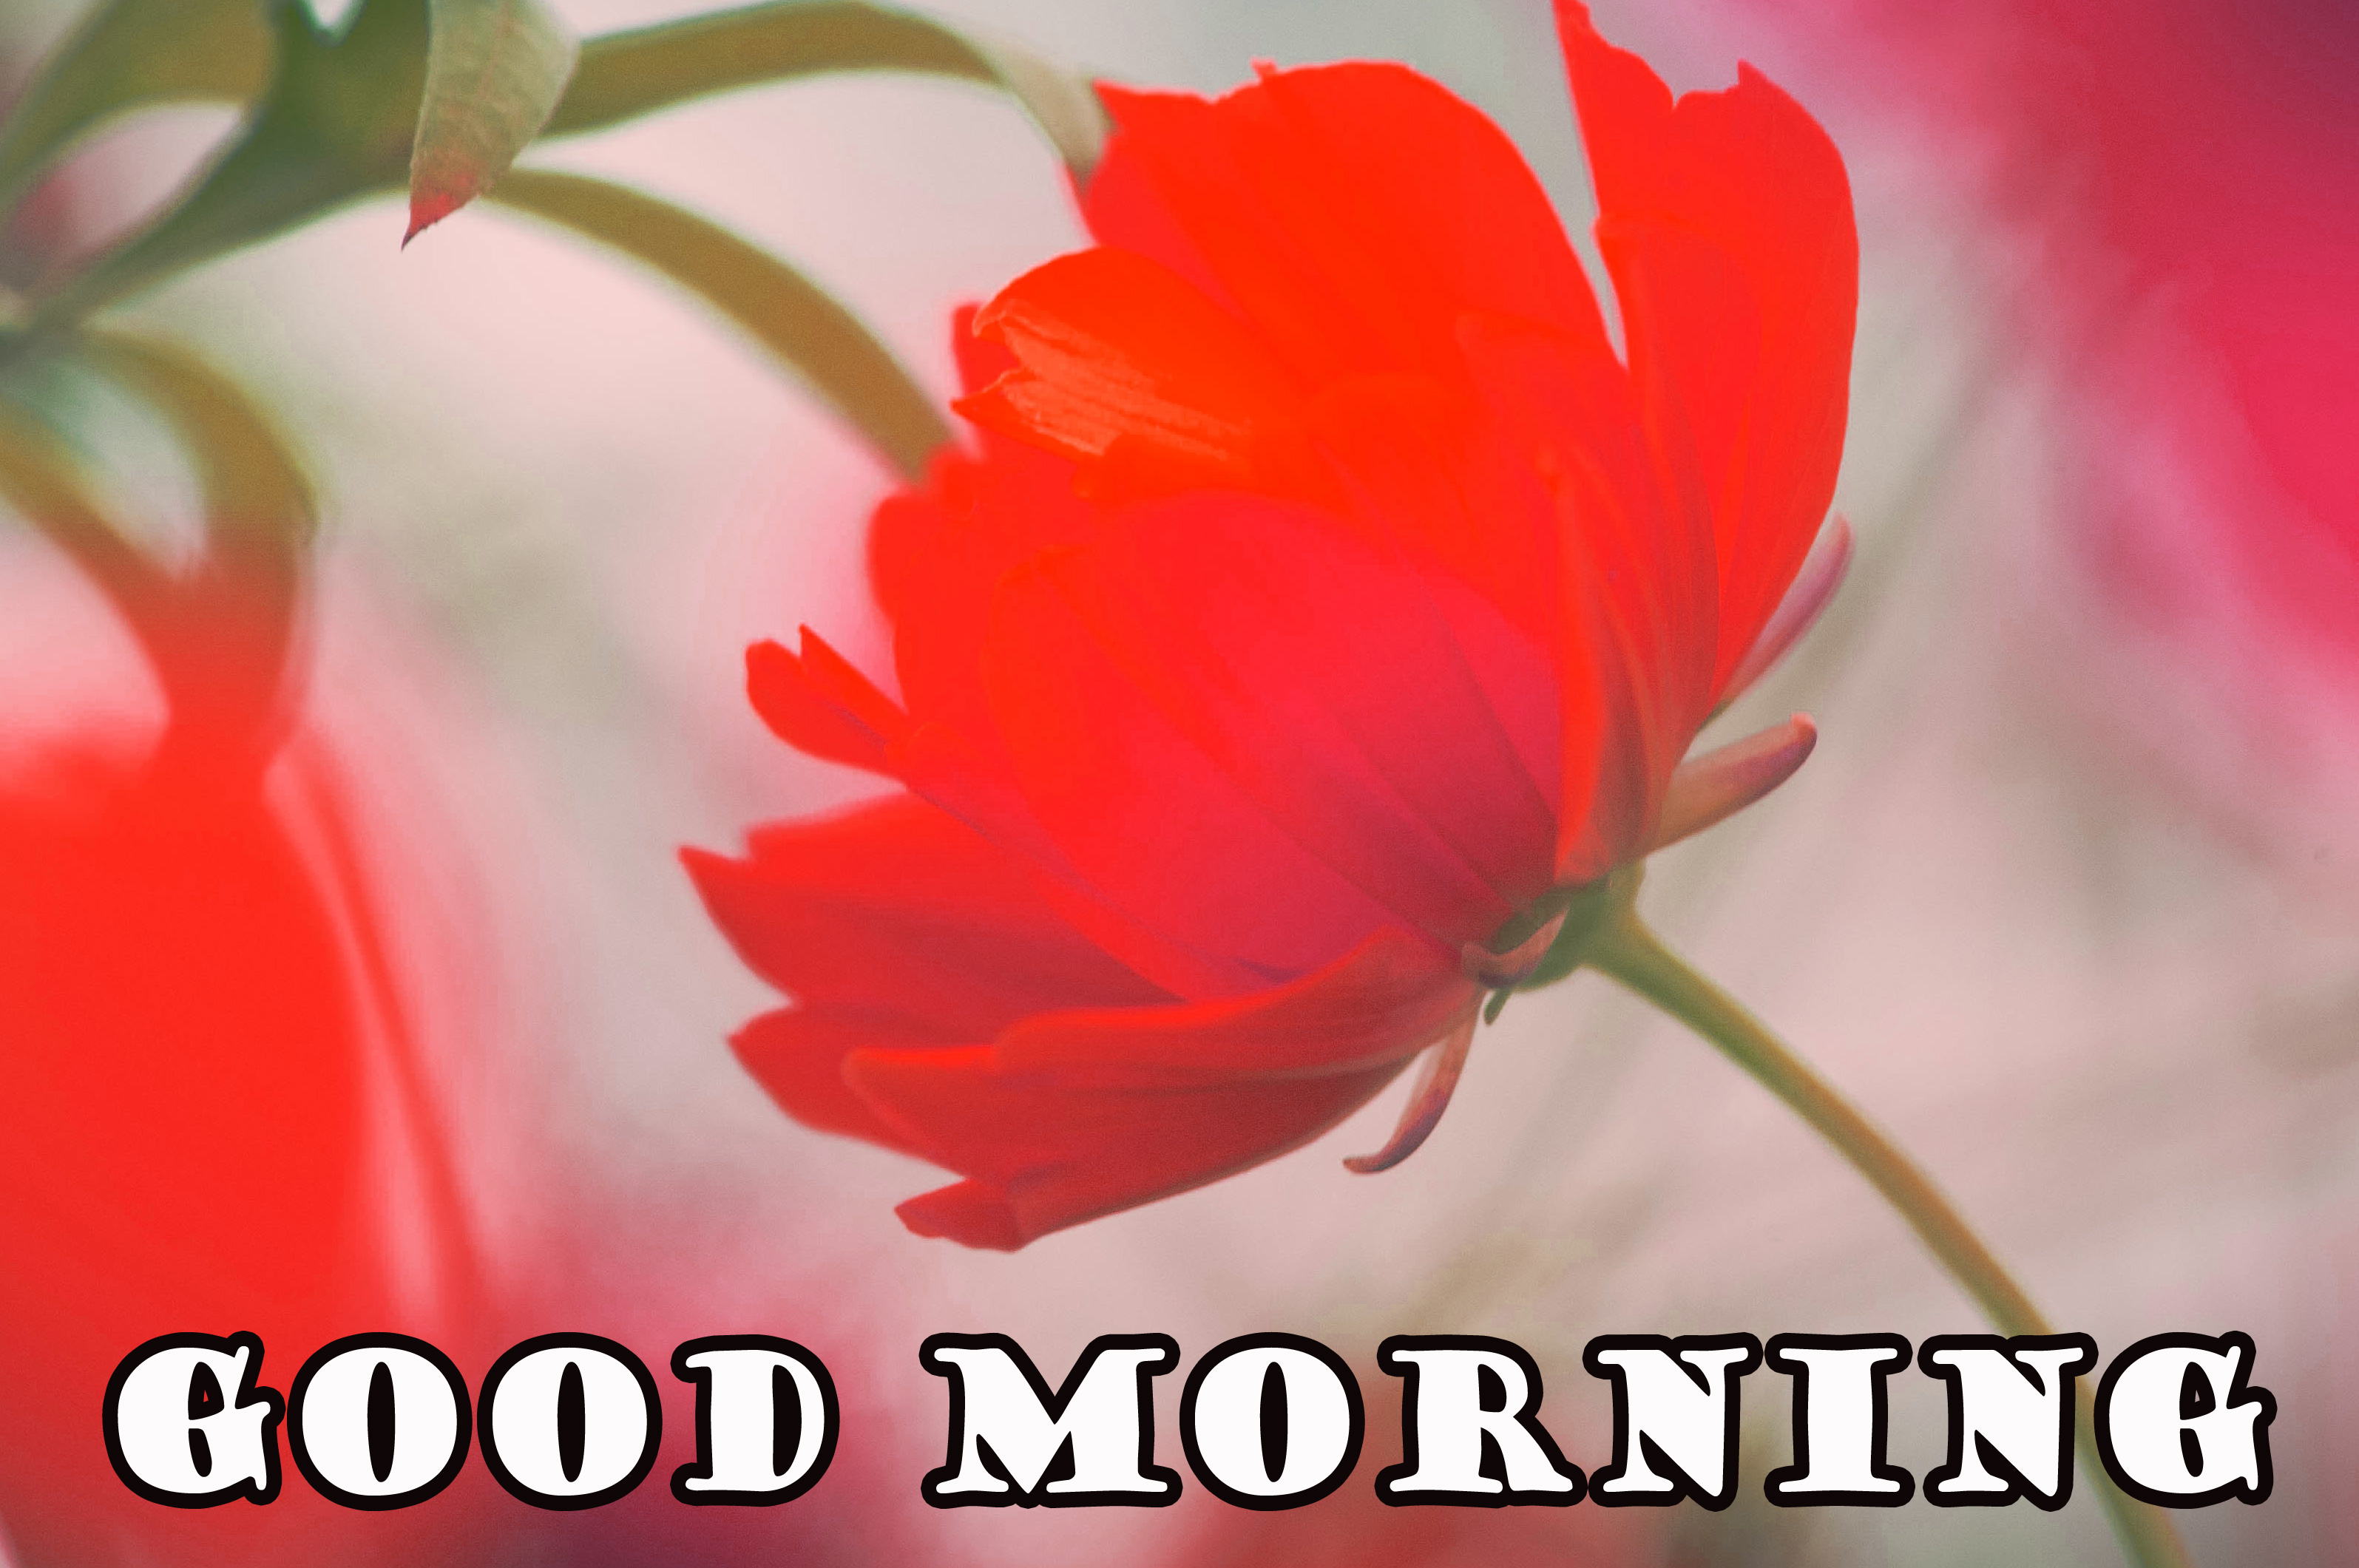 Good Morning Flowers Wallpaper Photo Images For Facebook